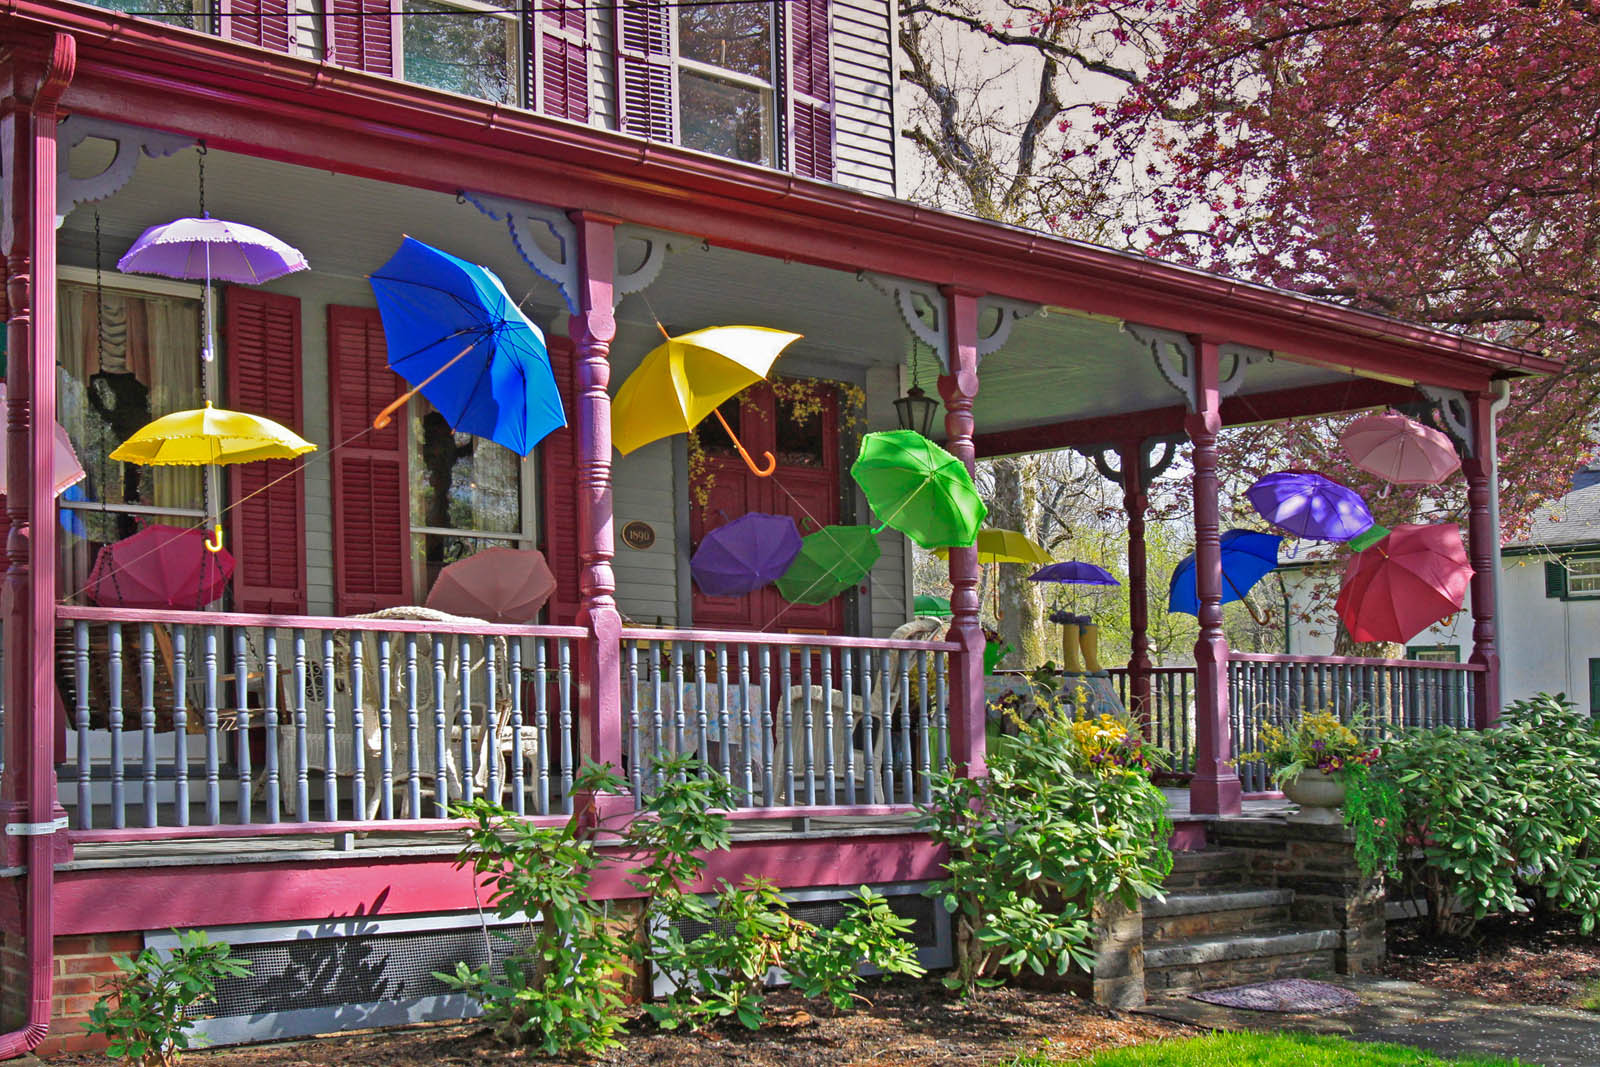 3_colorful-umbrellas-april-showers-sunny-porch-in-spring